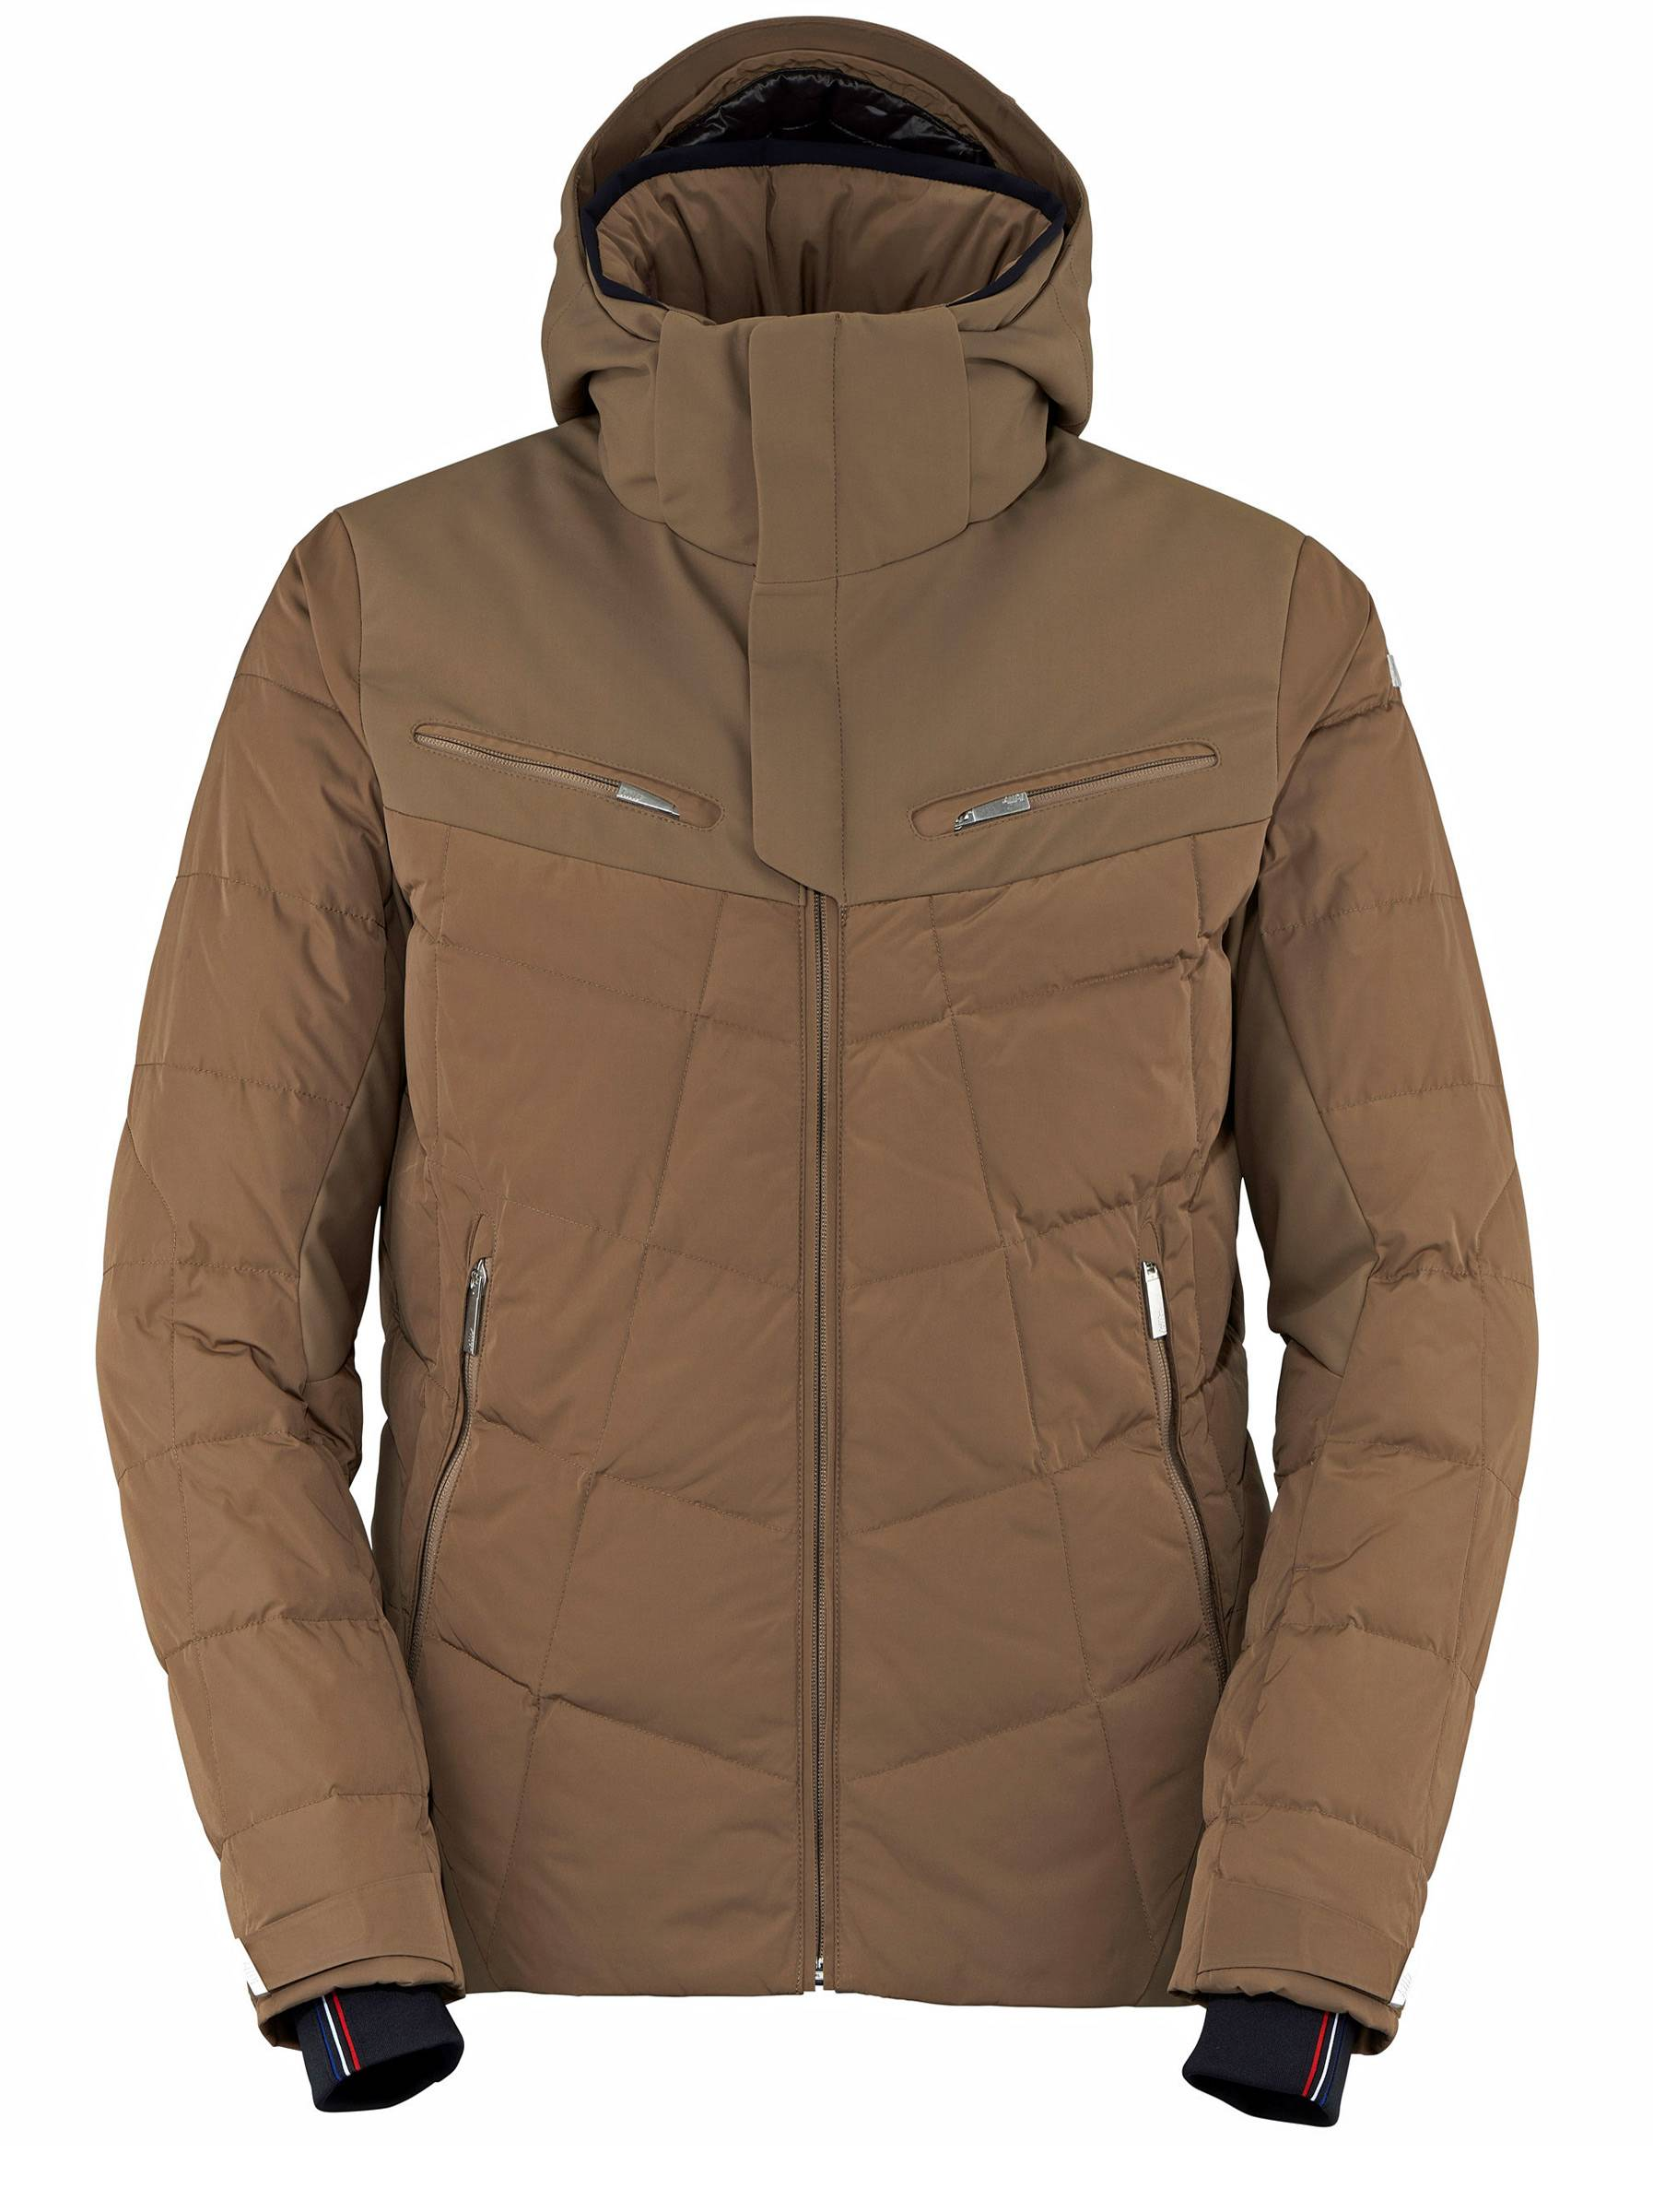 Down Ski Jacket for Men by Killy